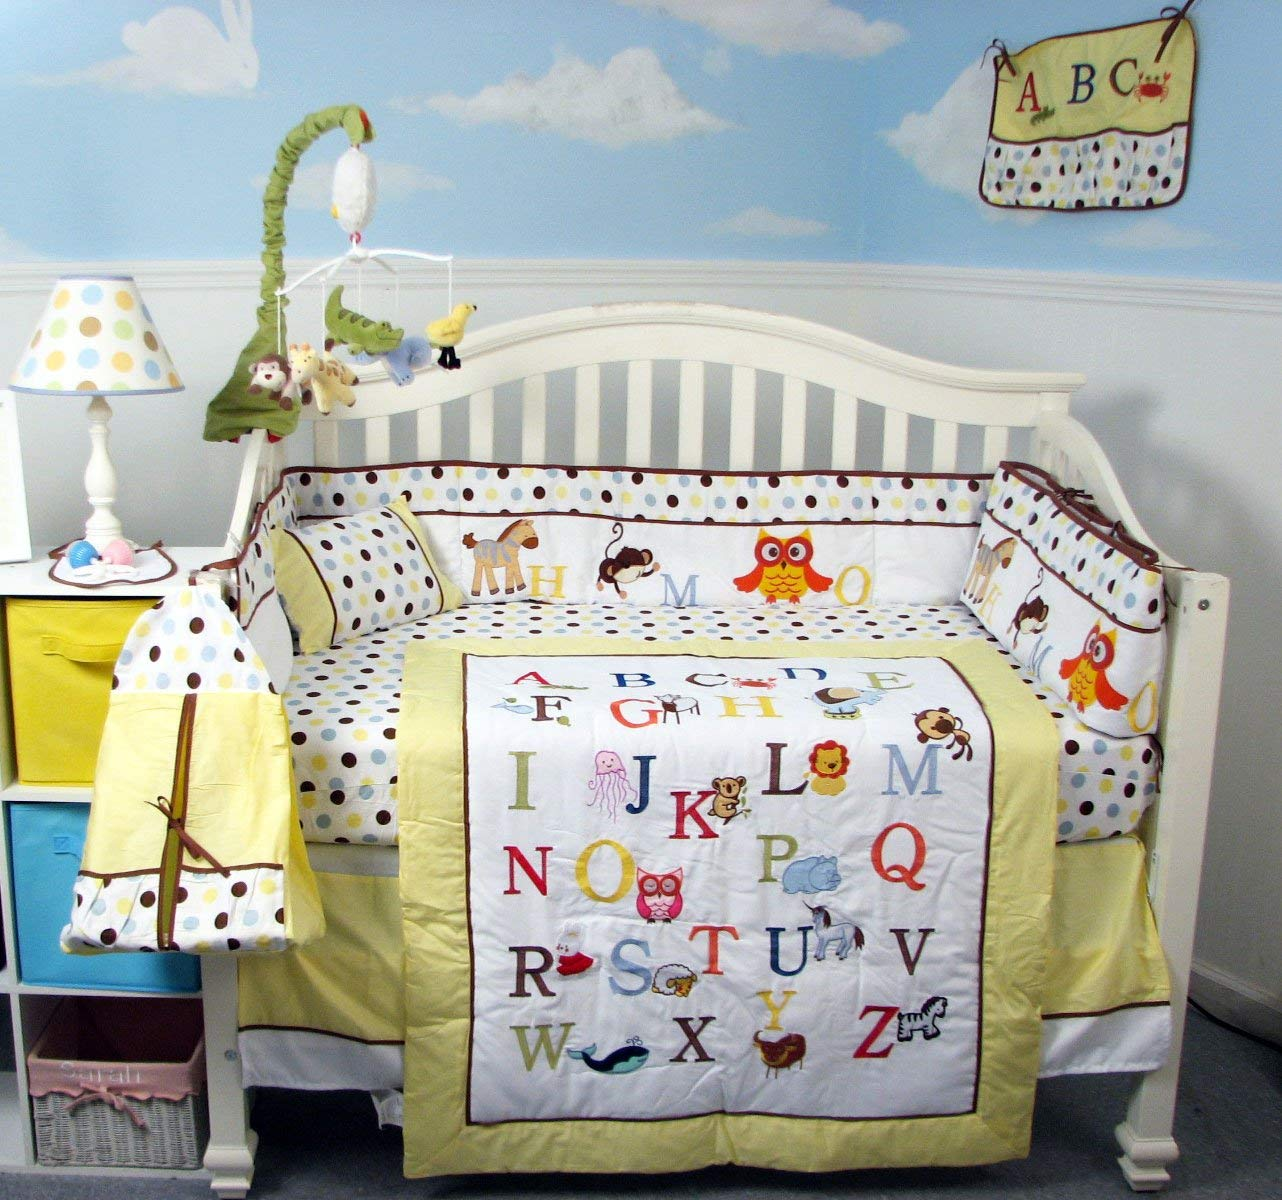 Baby Crib Nursery Bedding in Yellow with Alphabet motifs